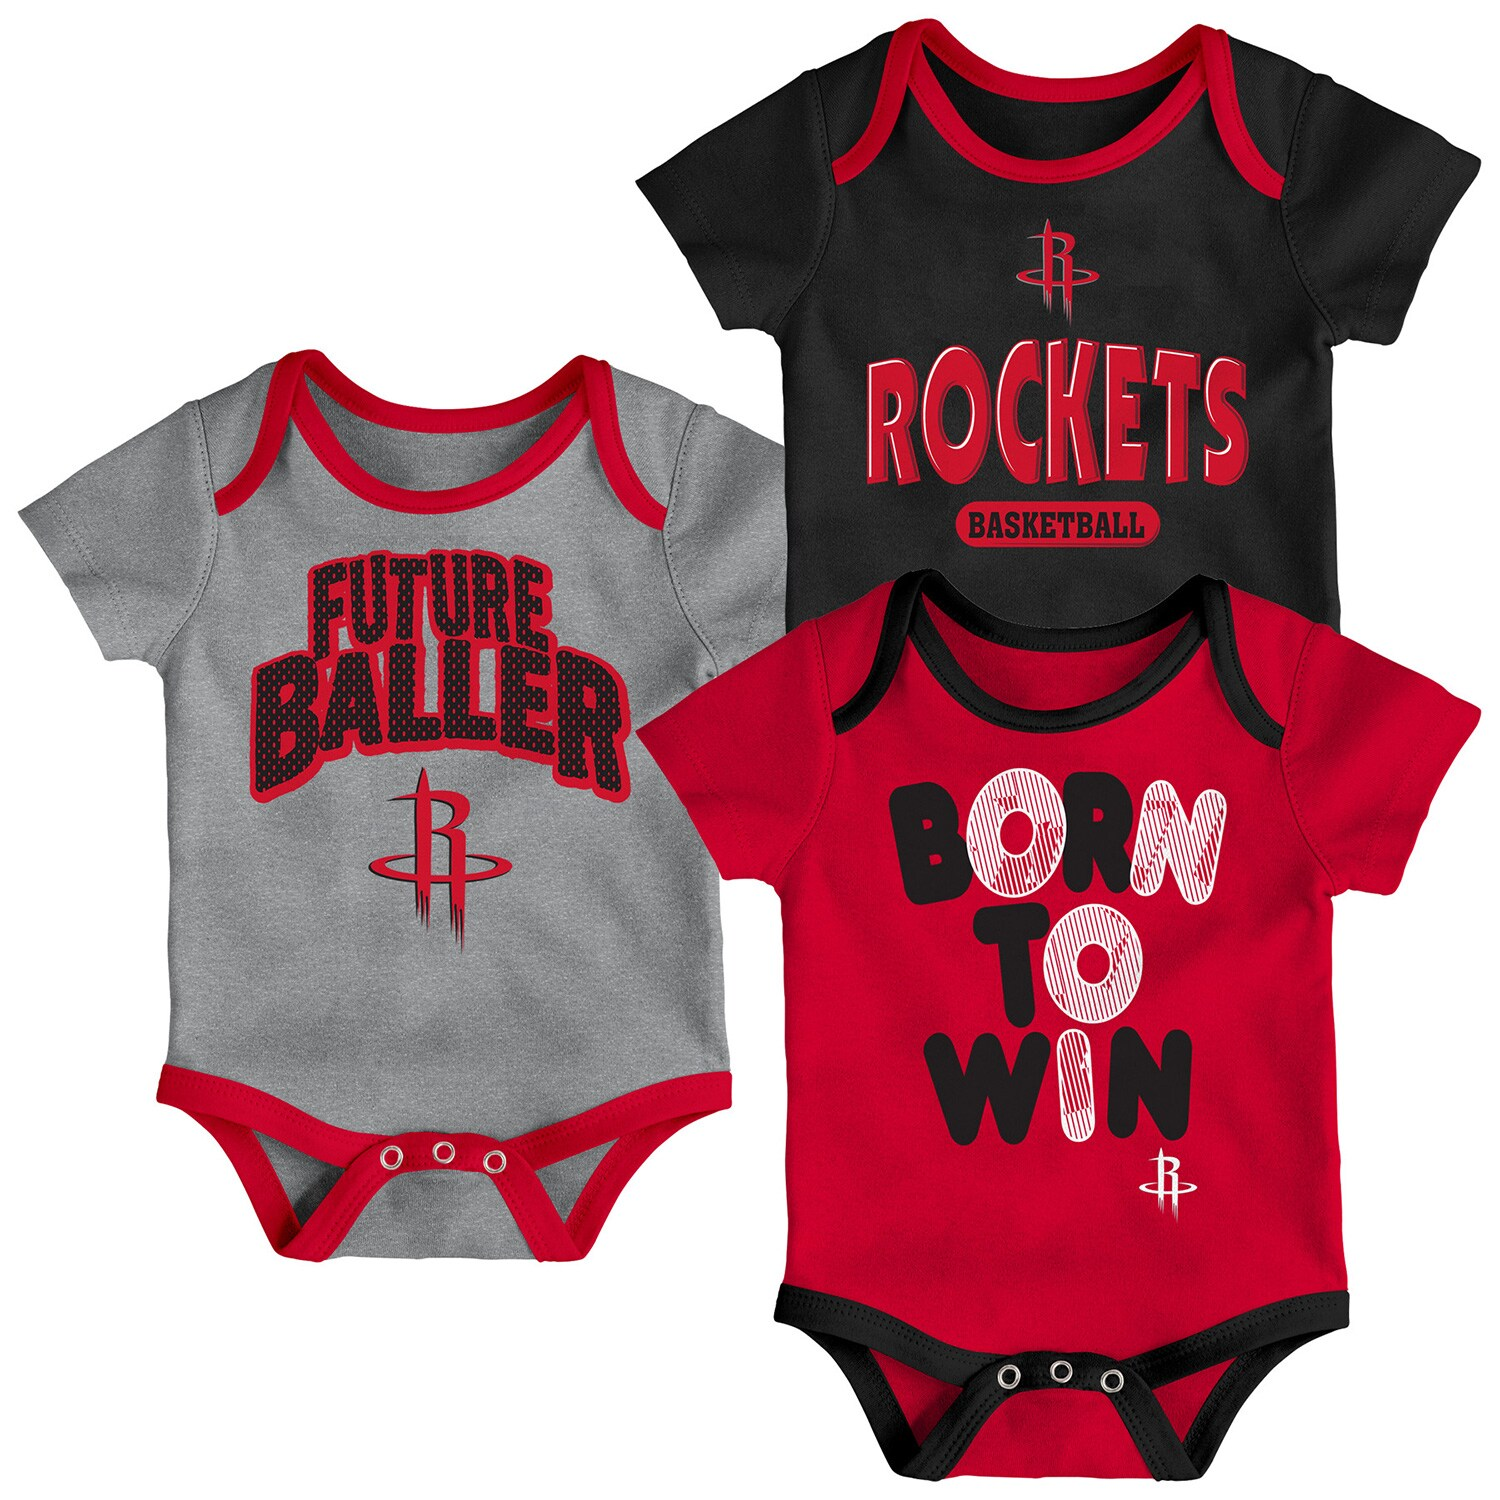 Houston Rockets Newborn Little Fan Three-Pack Bodysuit Set - Red/Black/Heathered Gray